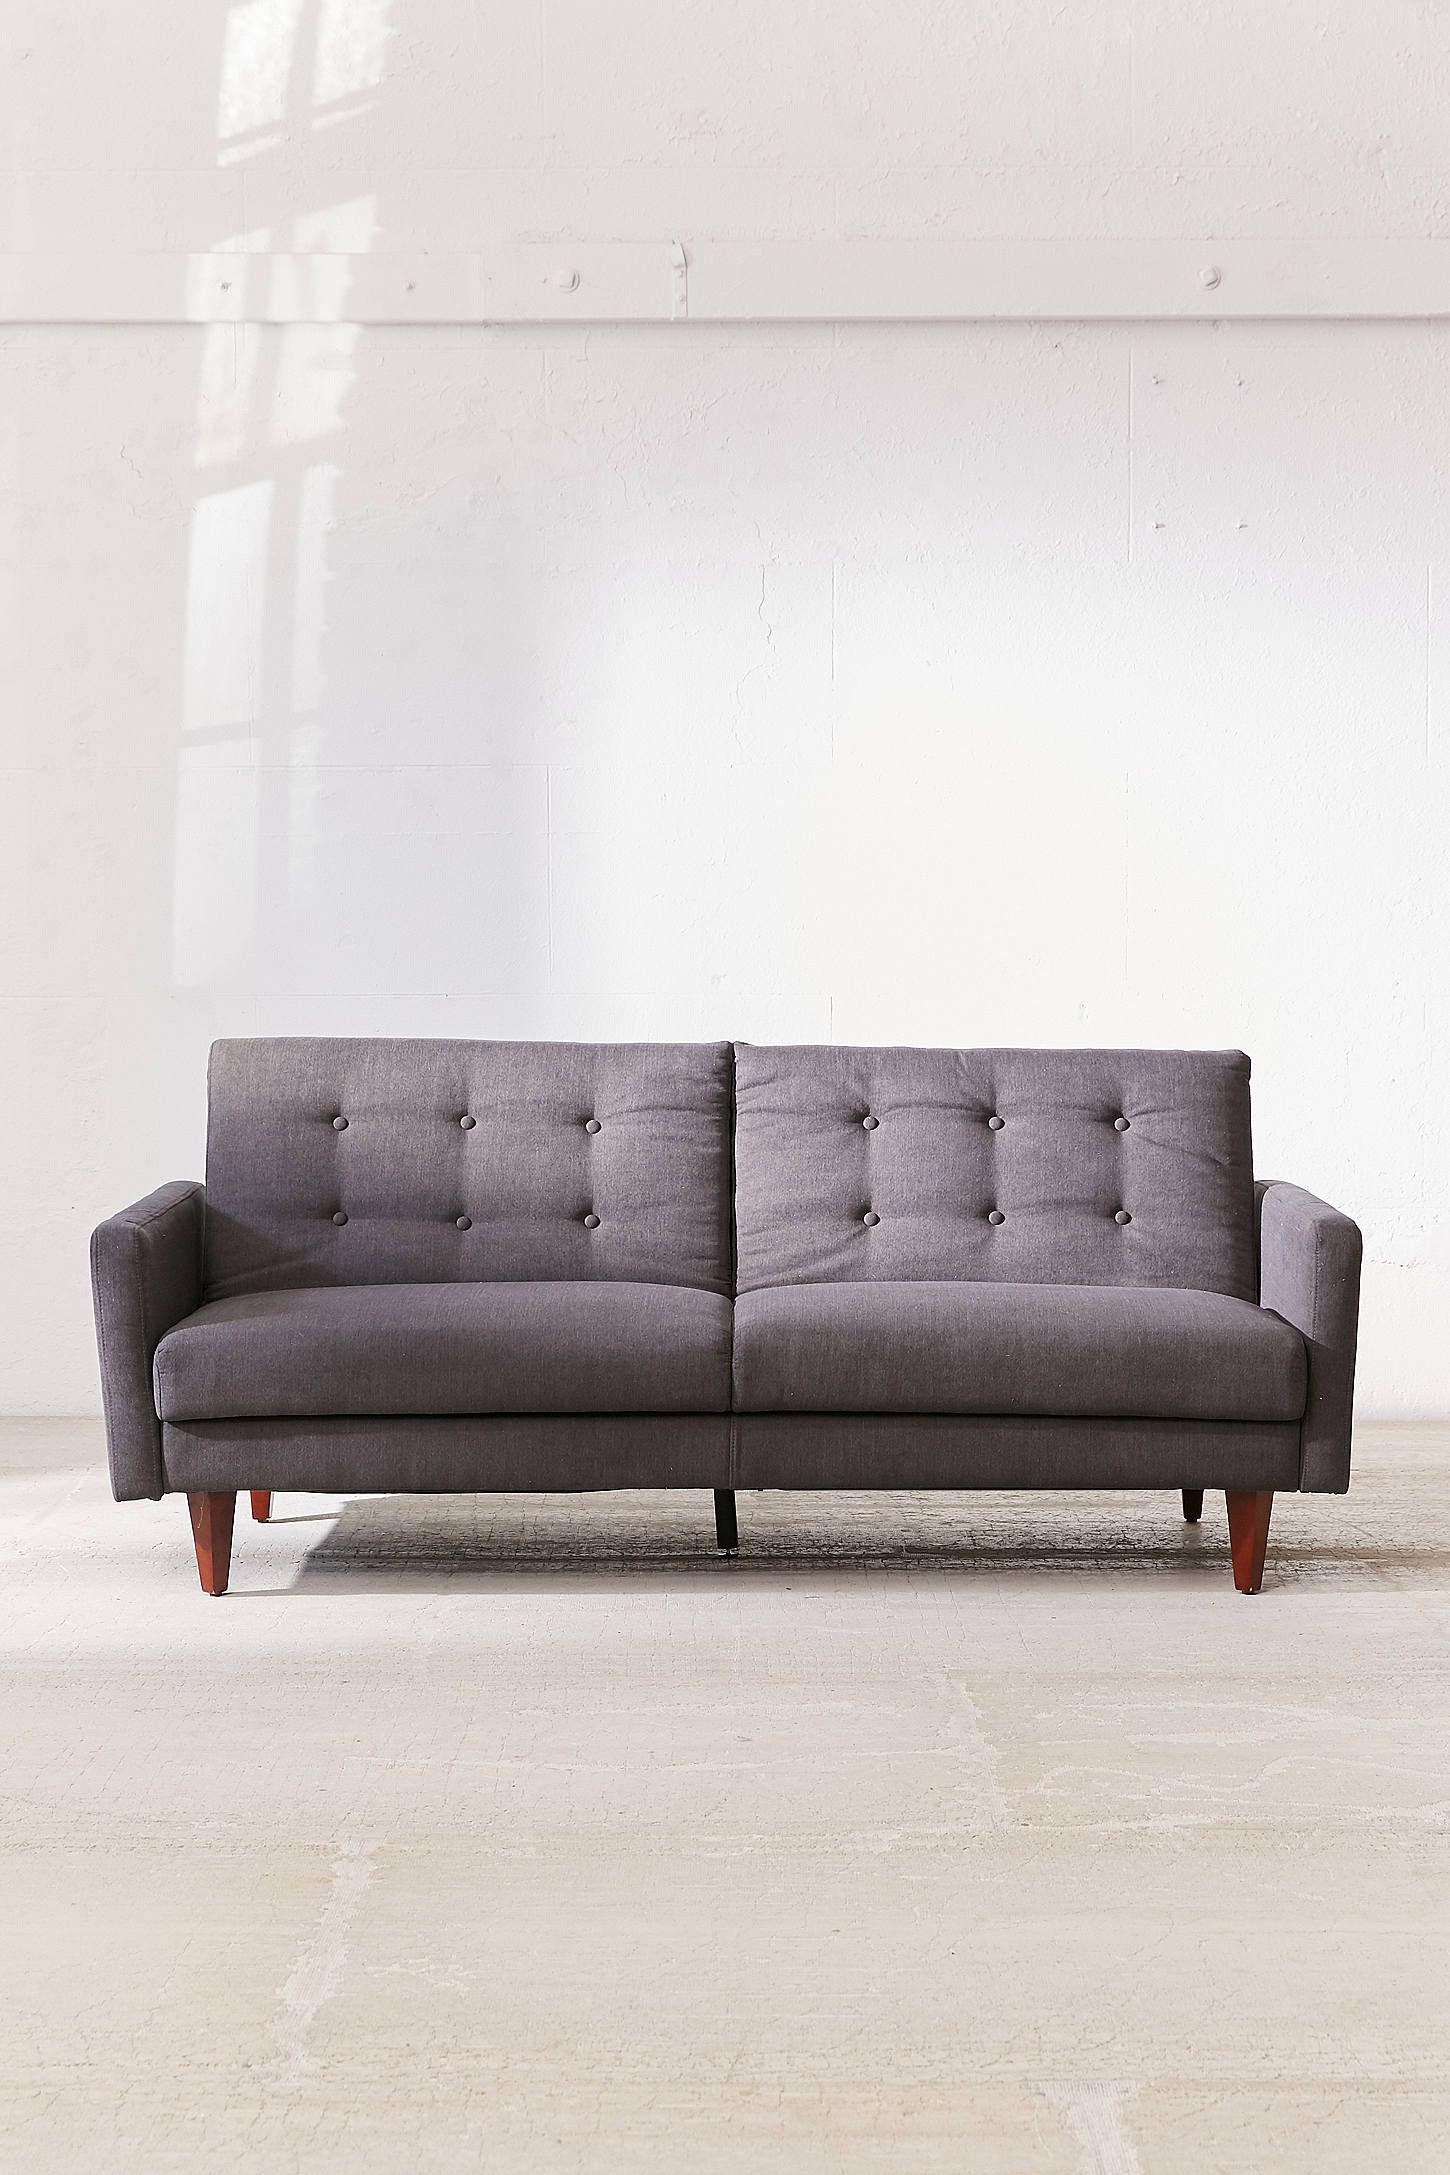 xlarge urban b slide outfitters fit qlt shop view couch hei velvet eleanor constrain sofa